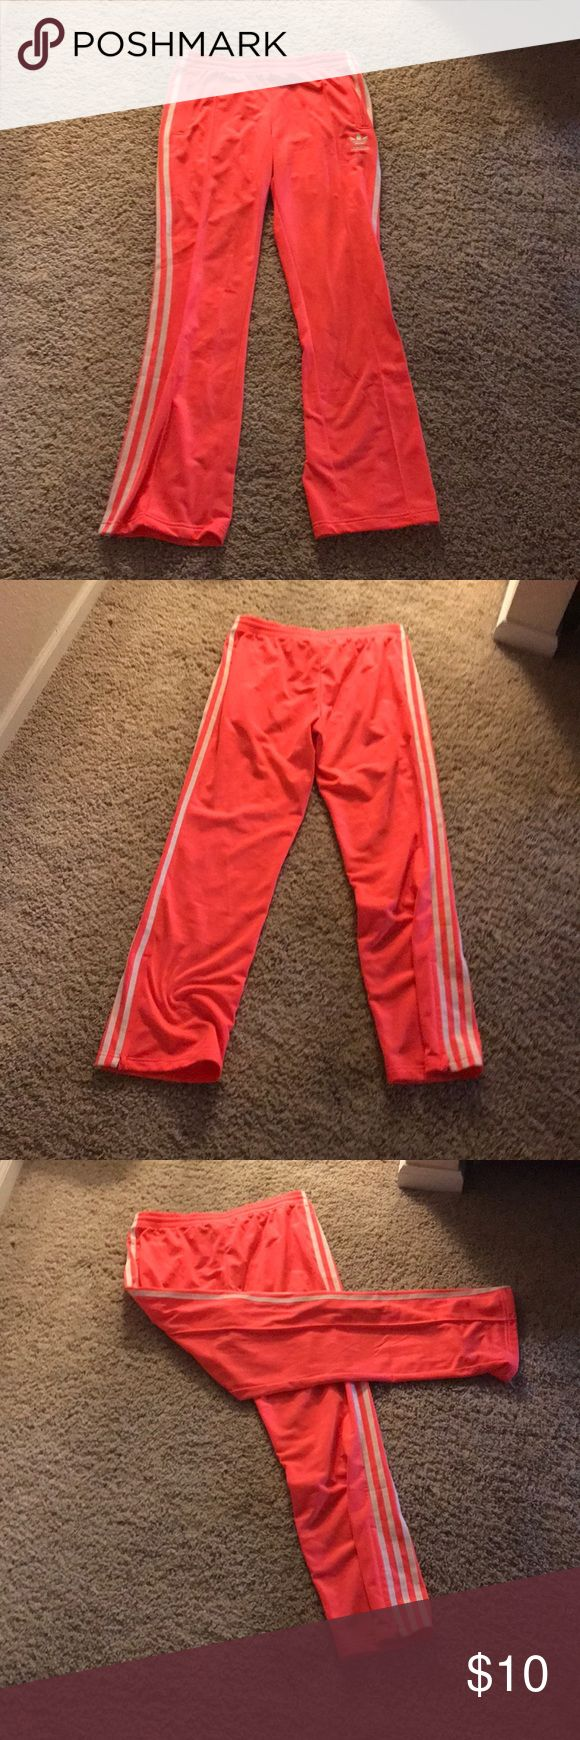 Adidas neon pants These are peach colored joggers that are in good condition. I bought it in a set but these didn't fit me right adidas Pants Track Pants & Joggers